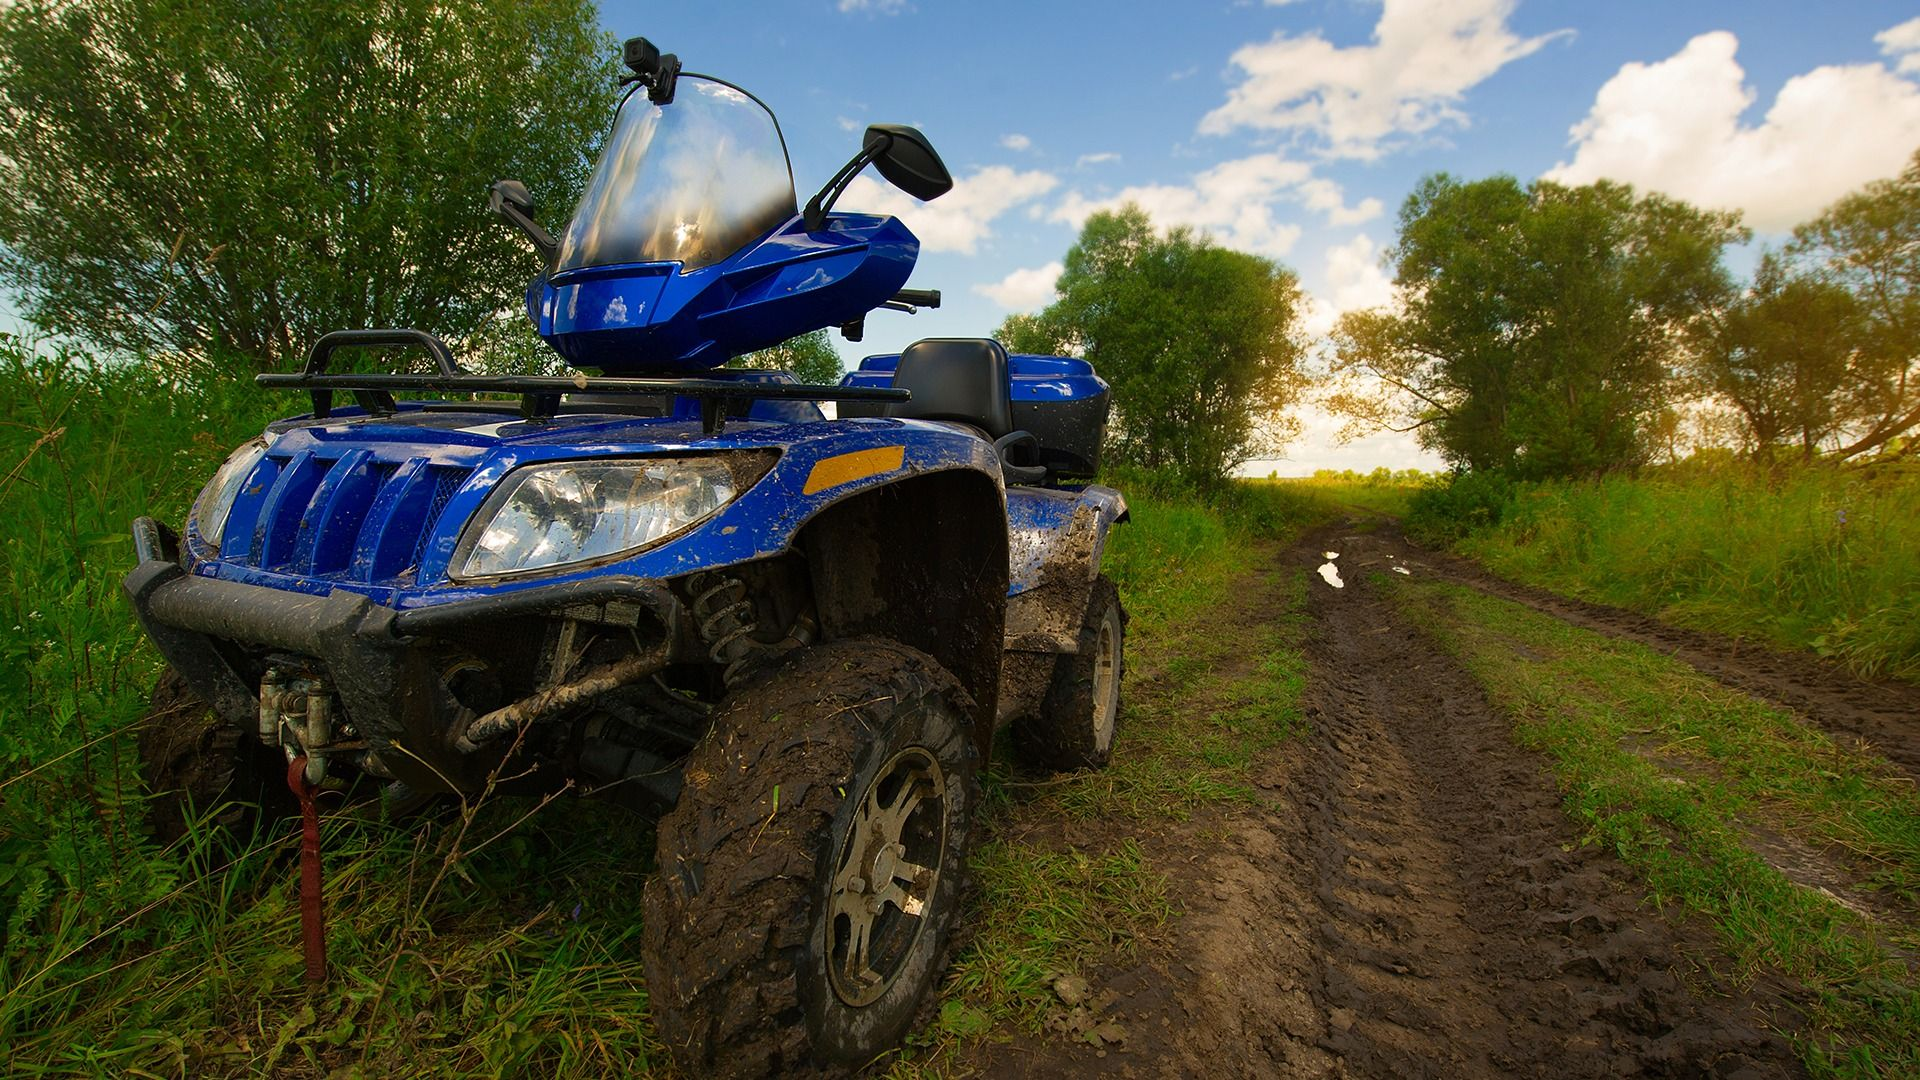 Atv Farm Tour Rides Up For A Farm Adventure We Just Brought In